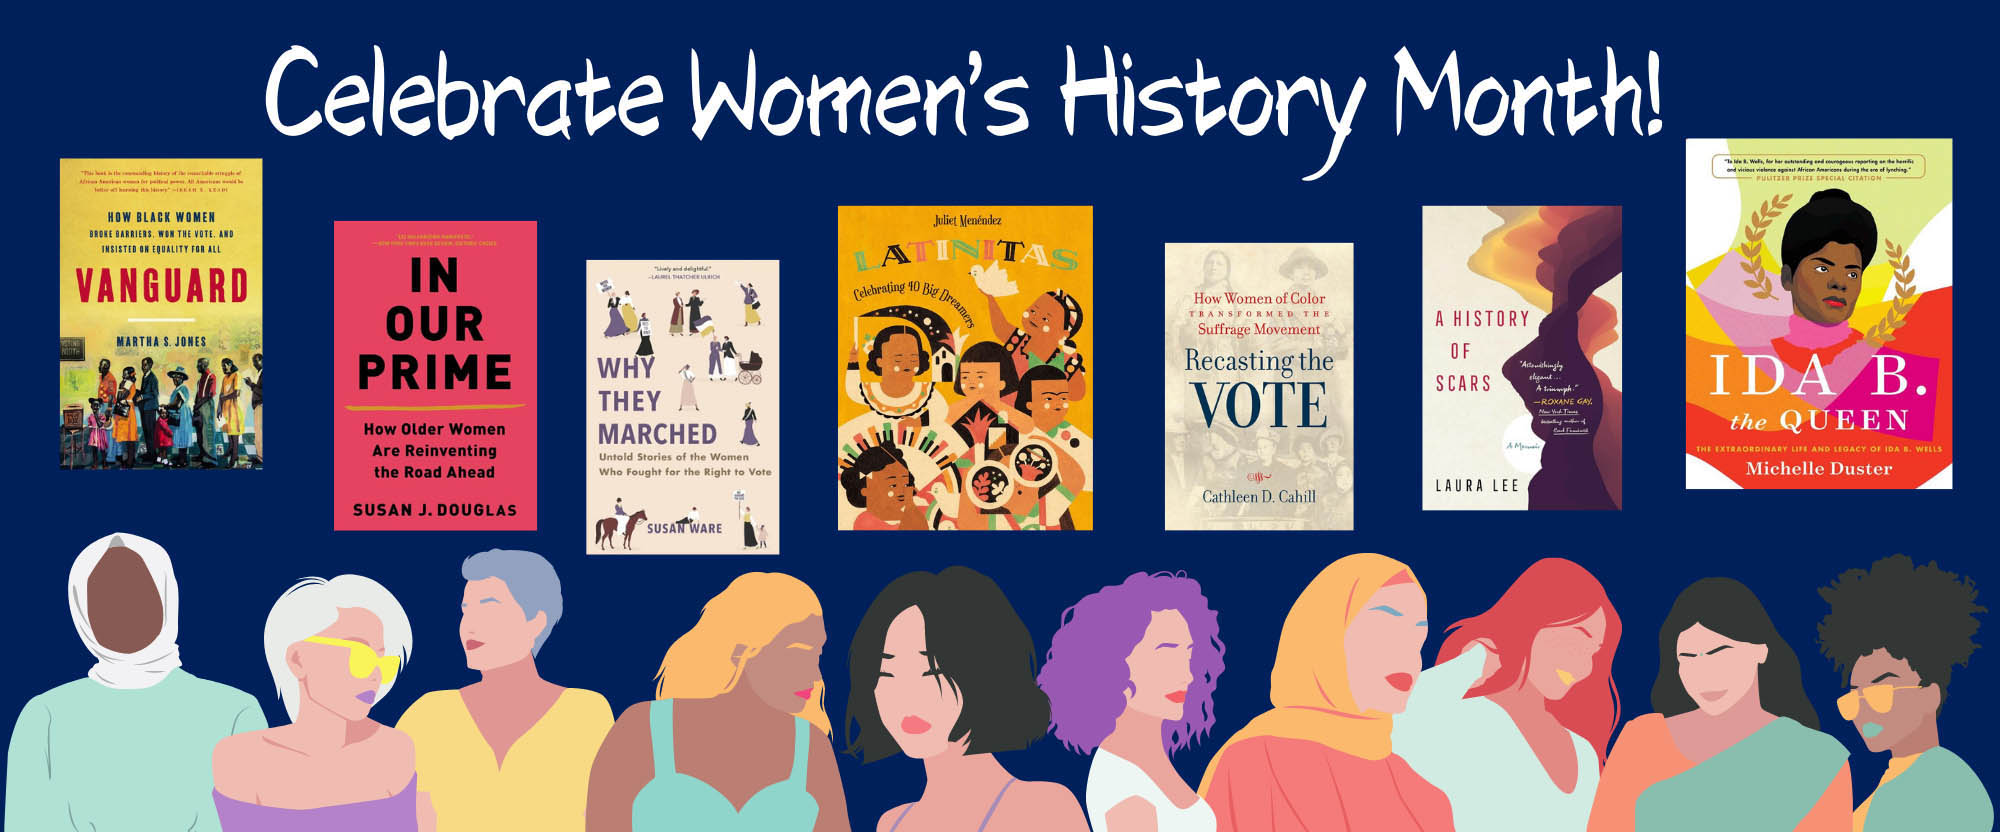 celebrate women's history month with our reading list